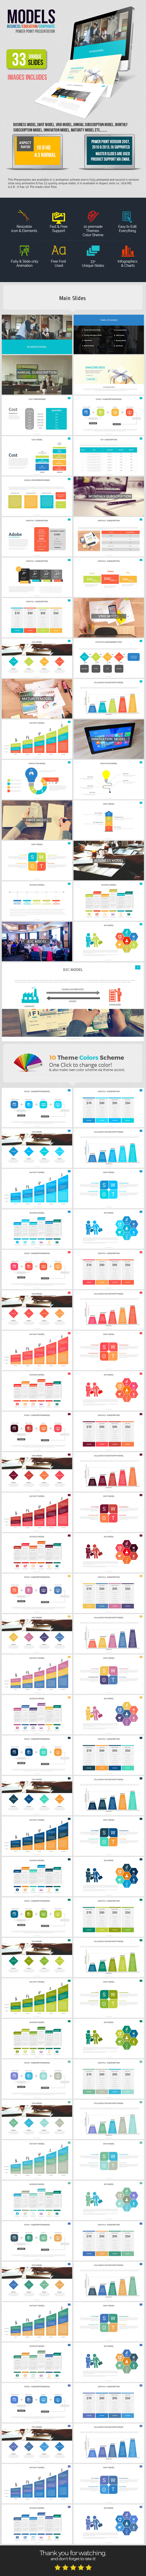 Models Power Point Presentation - Business PowerPoint Templates